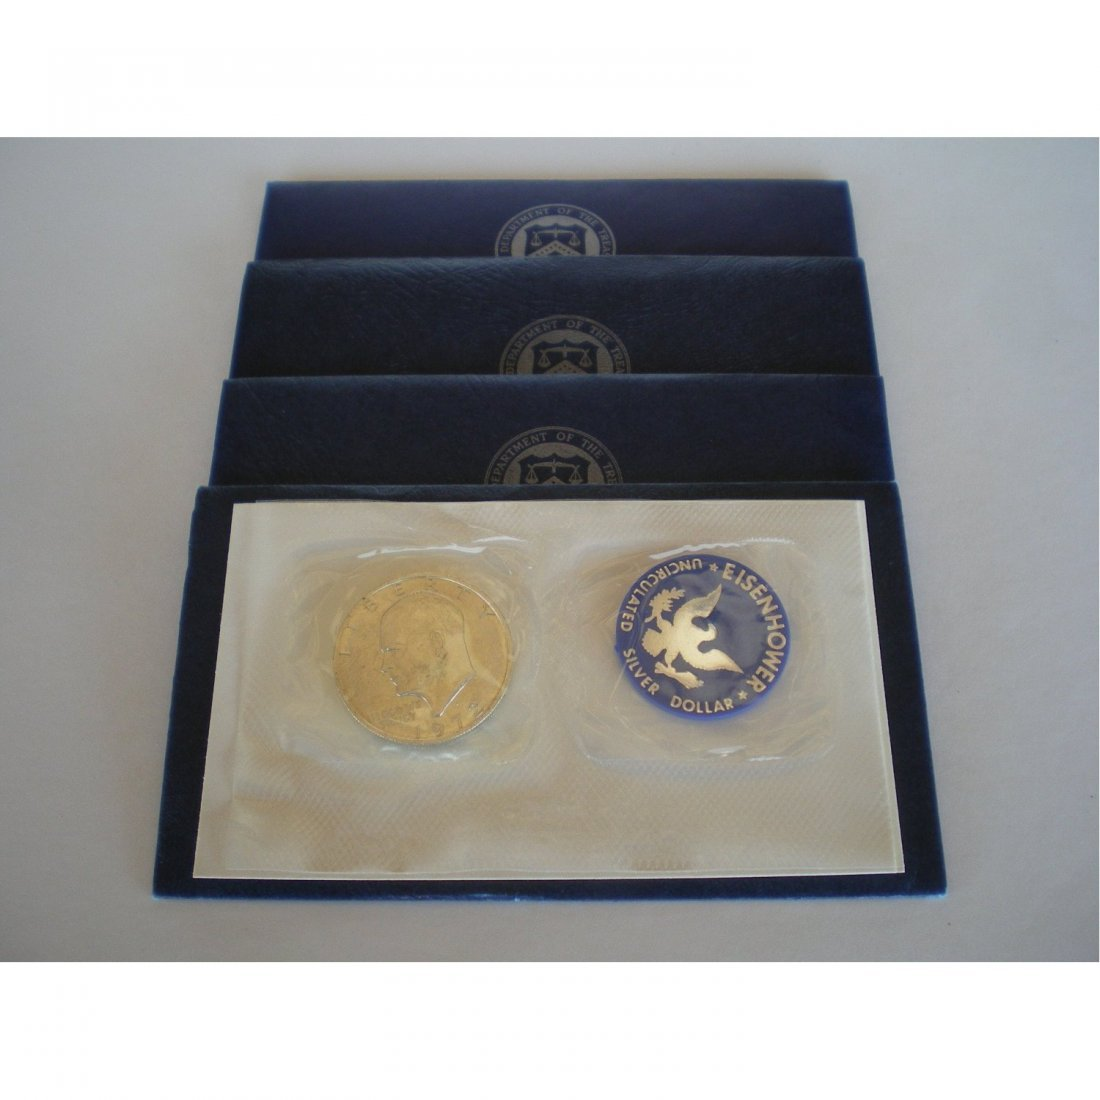 6A: Eisenhower Uncirculated Silver Dollar - Blue Pack